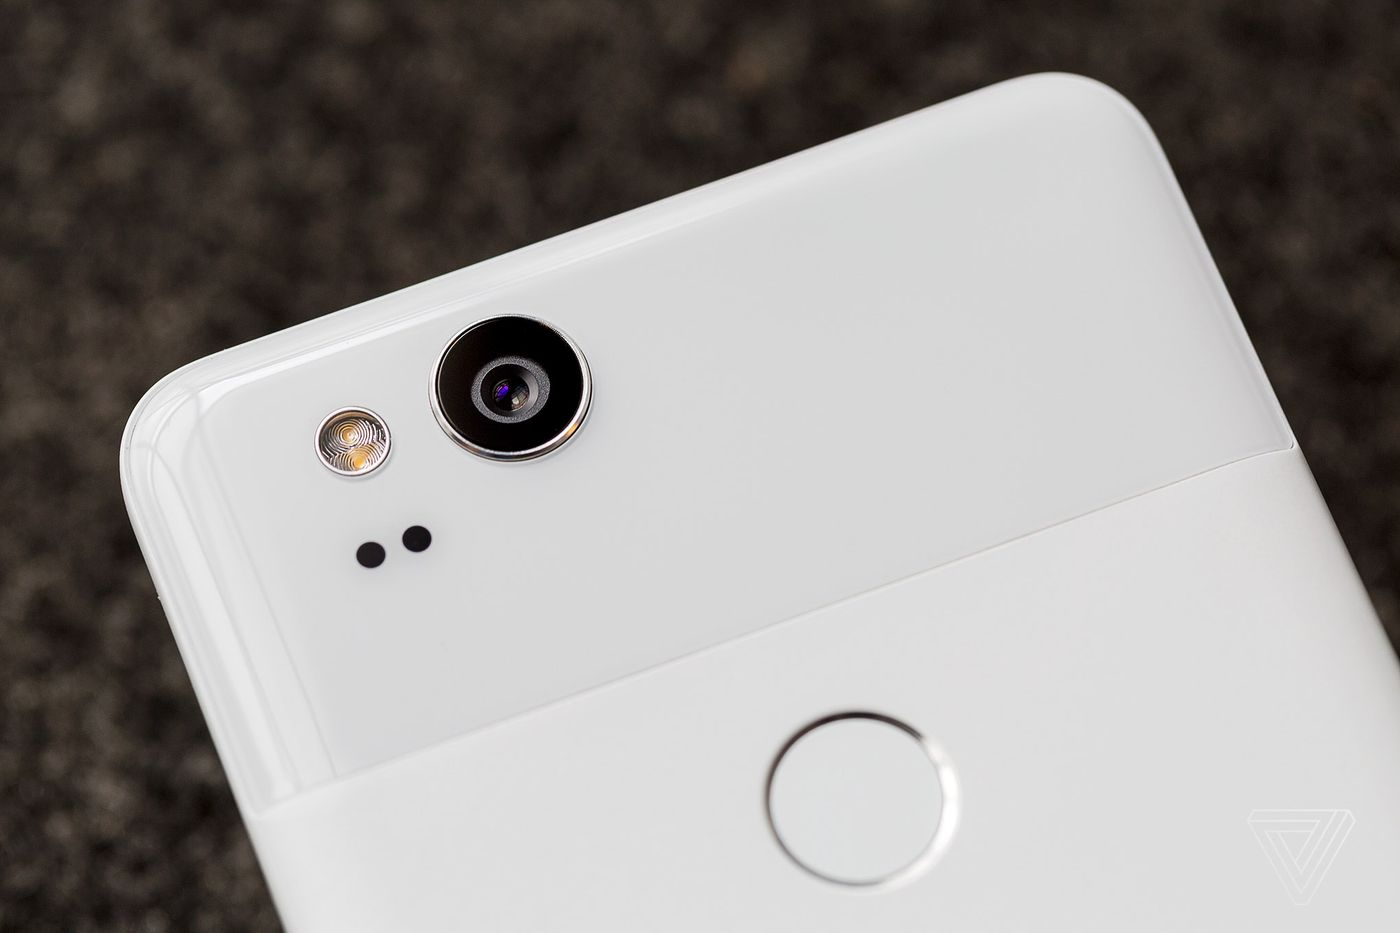 How to trade in your old Pixel, Pixel 2 and Pixel 2 XL phones - The